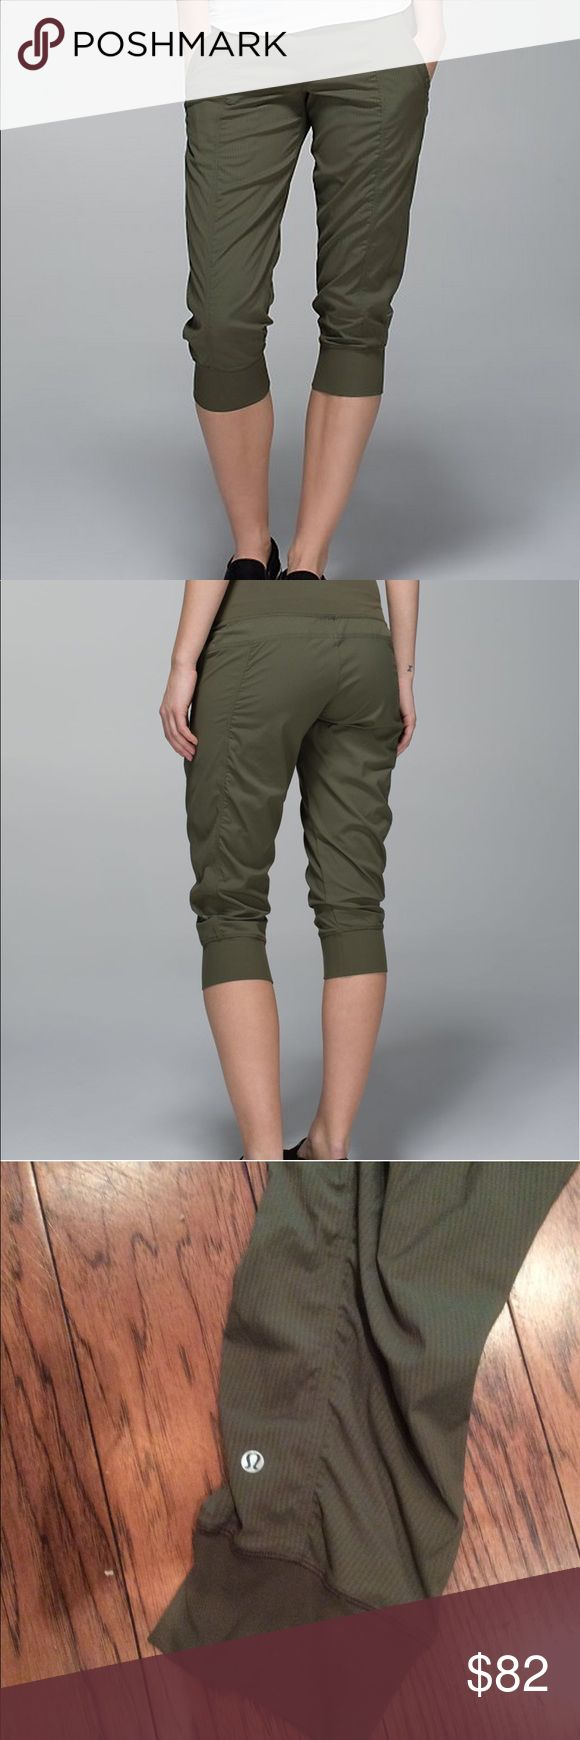 Lululemon In Flux Crop - Fatigue Green EUC (flawless) In Flux Crop in gorgeous Fatigue Green! ✨Incredible crop by Lululemon with waistband that can be worn high or low. Everything you could ask for in a Lulu Crop from comfort and style, plus versatility of wear!! More photos to come, size 4. Reasonable offers welcome. 😊 lululemon athletica Pants